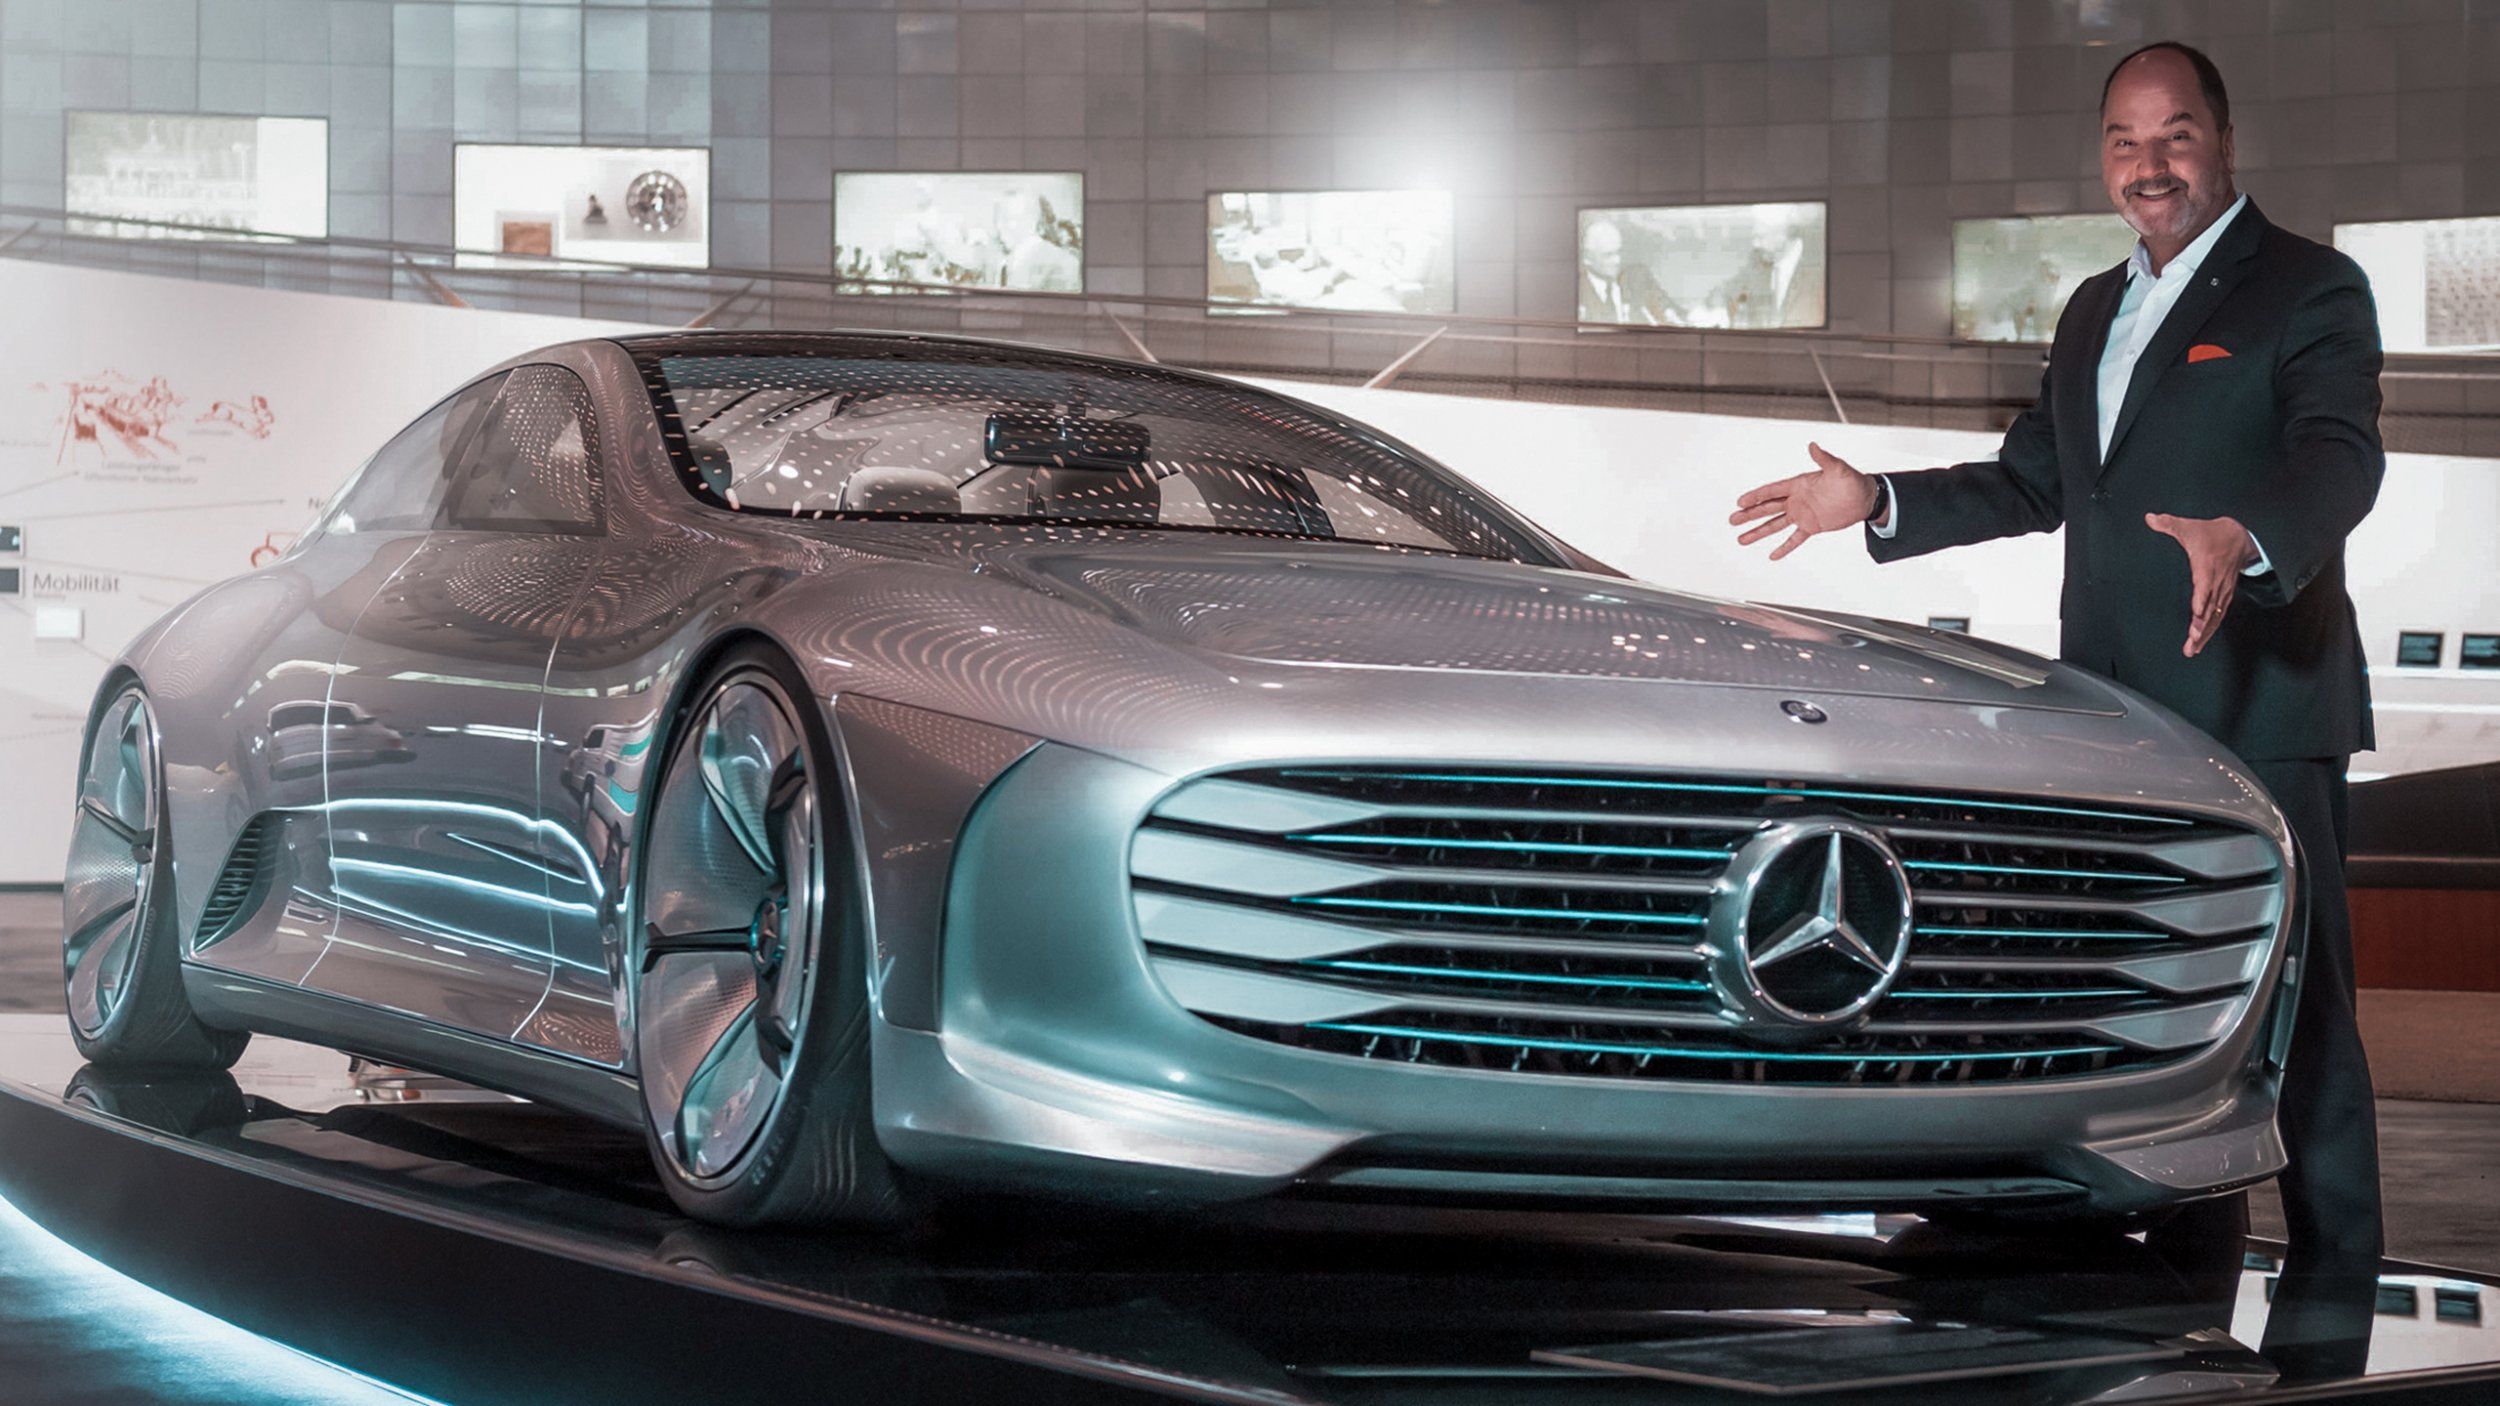 https://cloud.mb-lounge.com/files/HQ-Events/Classic/Museum/01-mercedes-benz-museum-special-guided-tours-future-of-mobility-v2-2560x1440.jpg